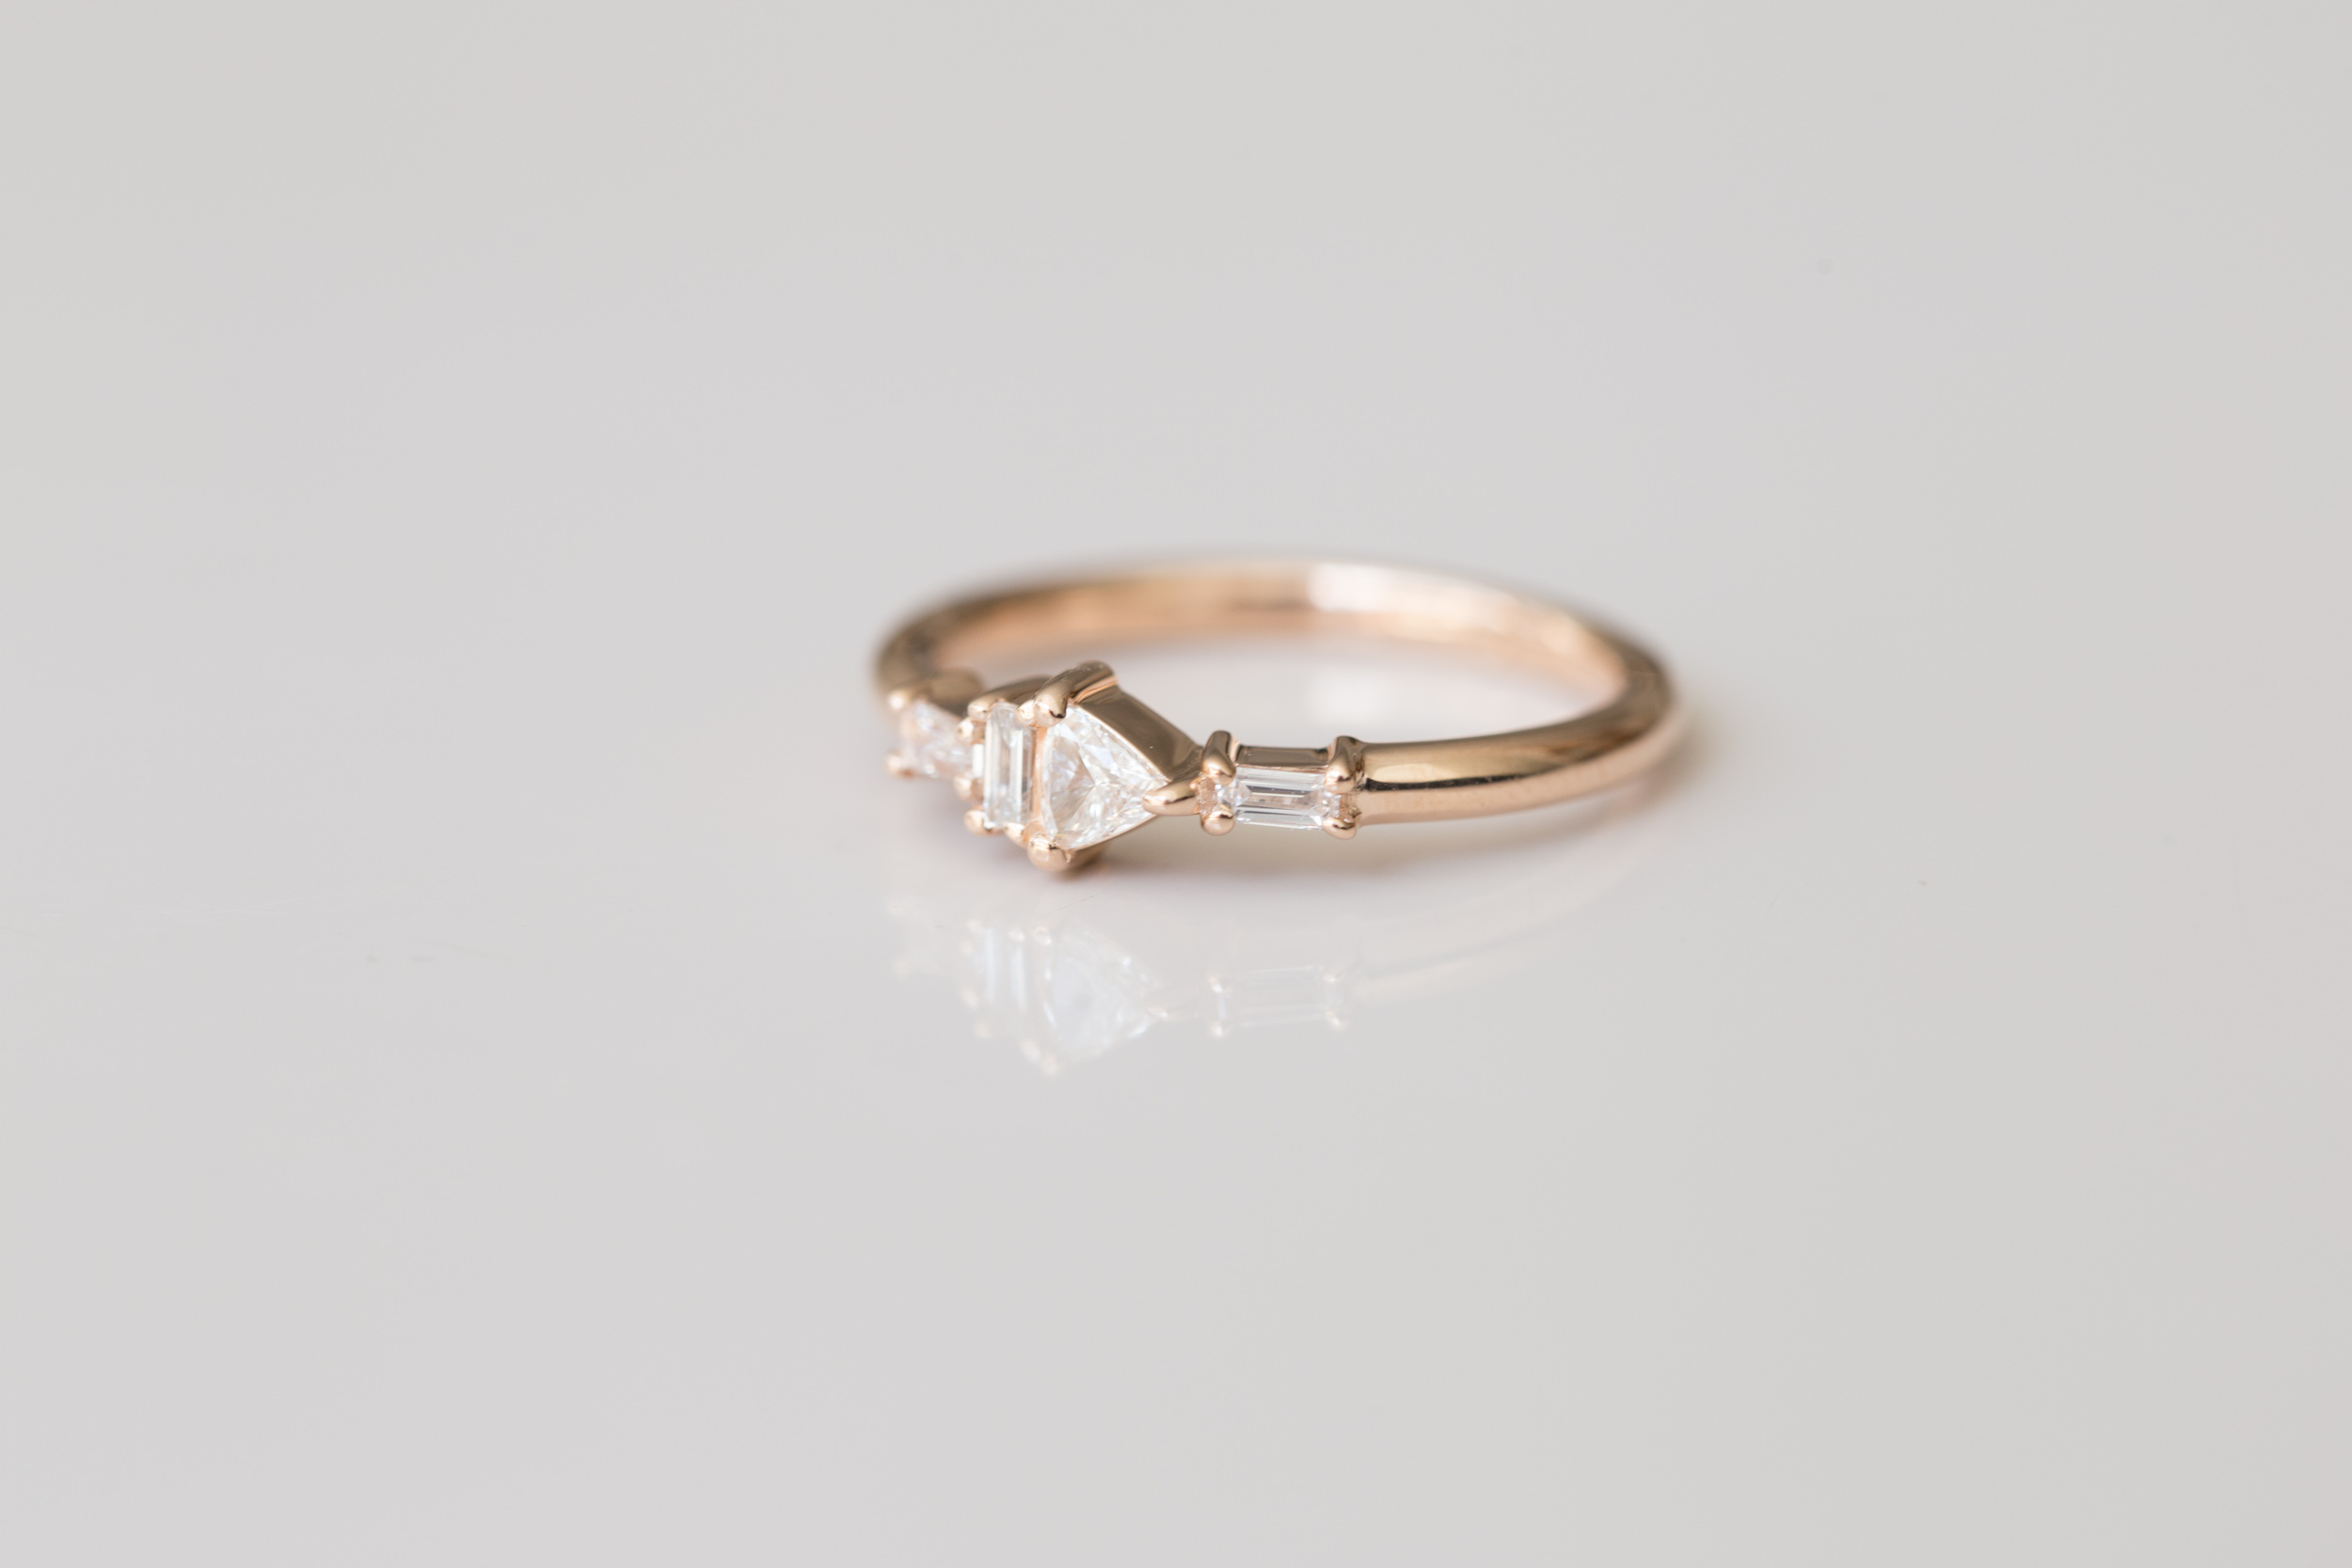 Becca + Molly Triangle Baguette Ring-3.jpg